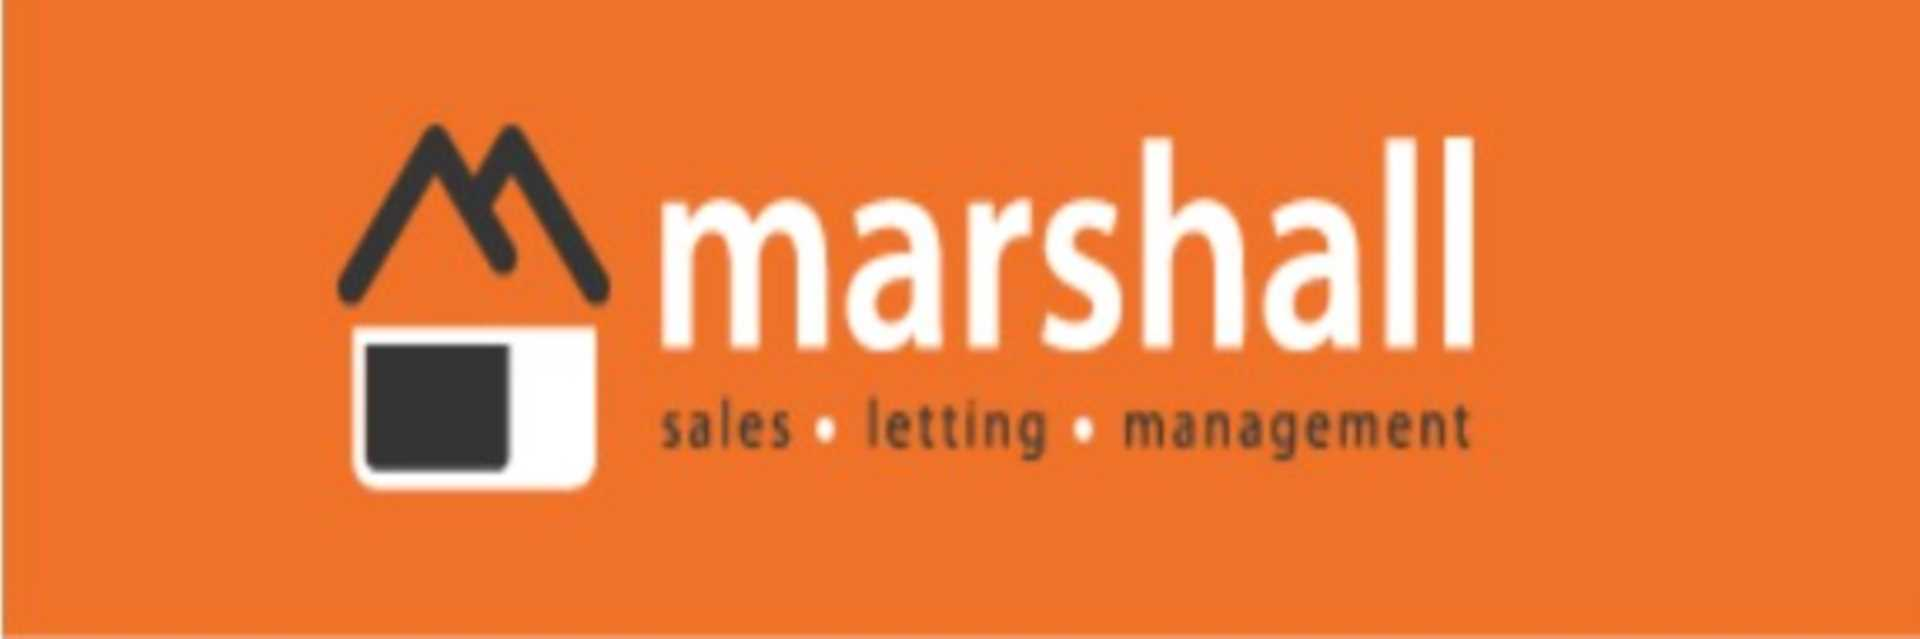 Turnkey: Marshalls Offer The Complete Package